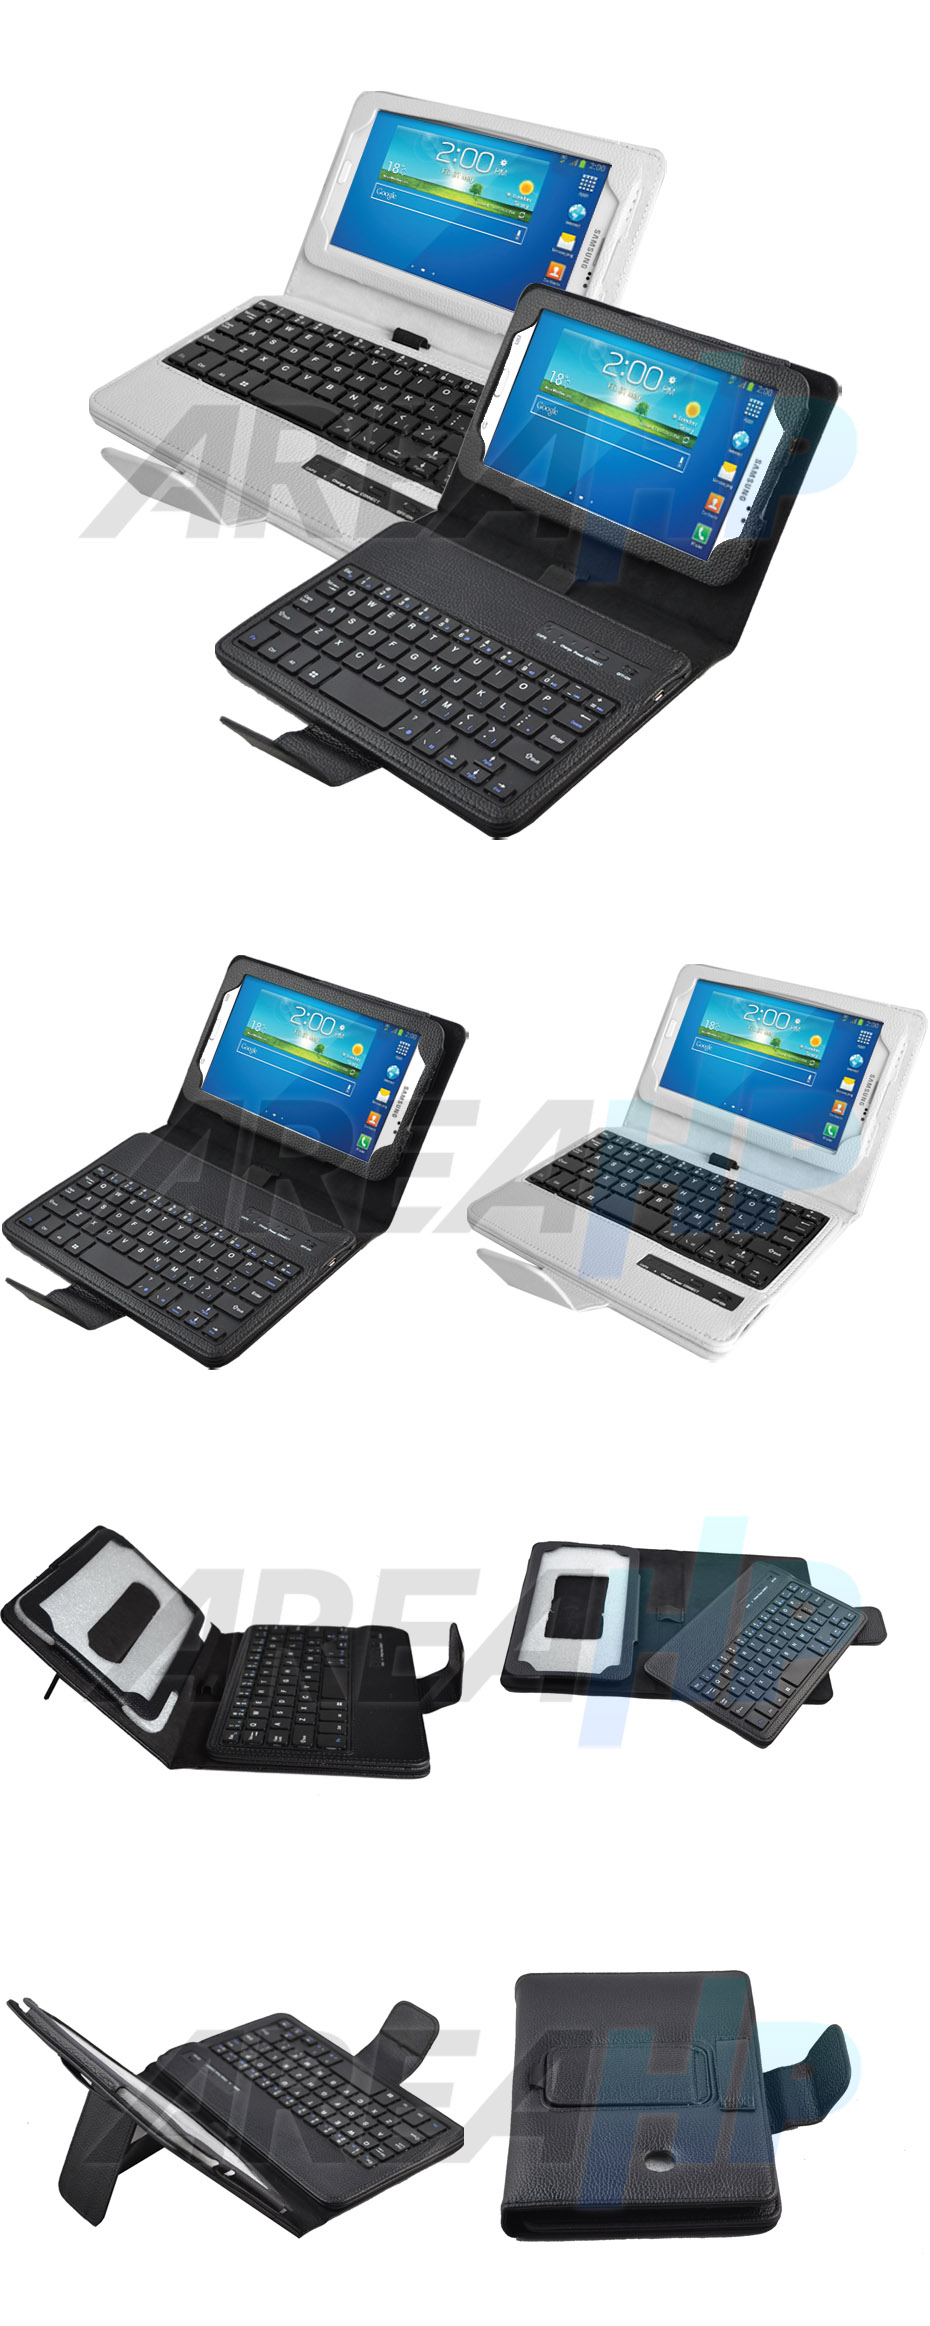 Removable Keyboard Leather Case for Samsung Galaxy Tab3 7.0 V Overview